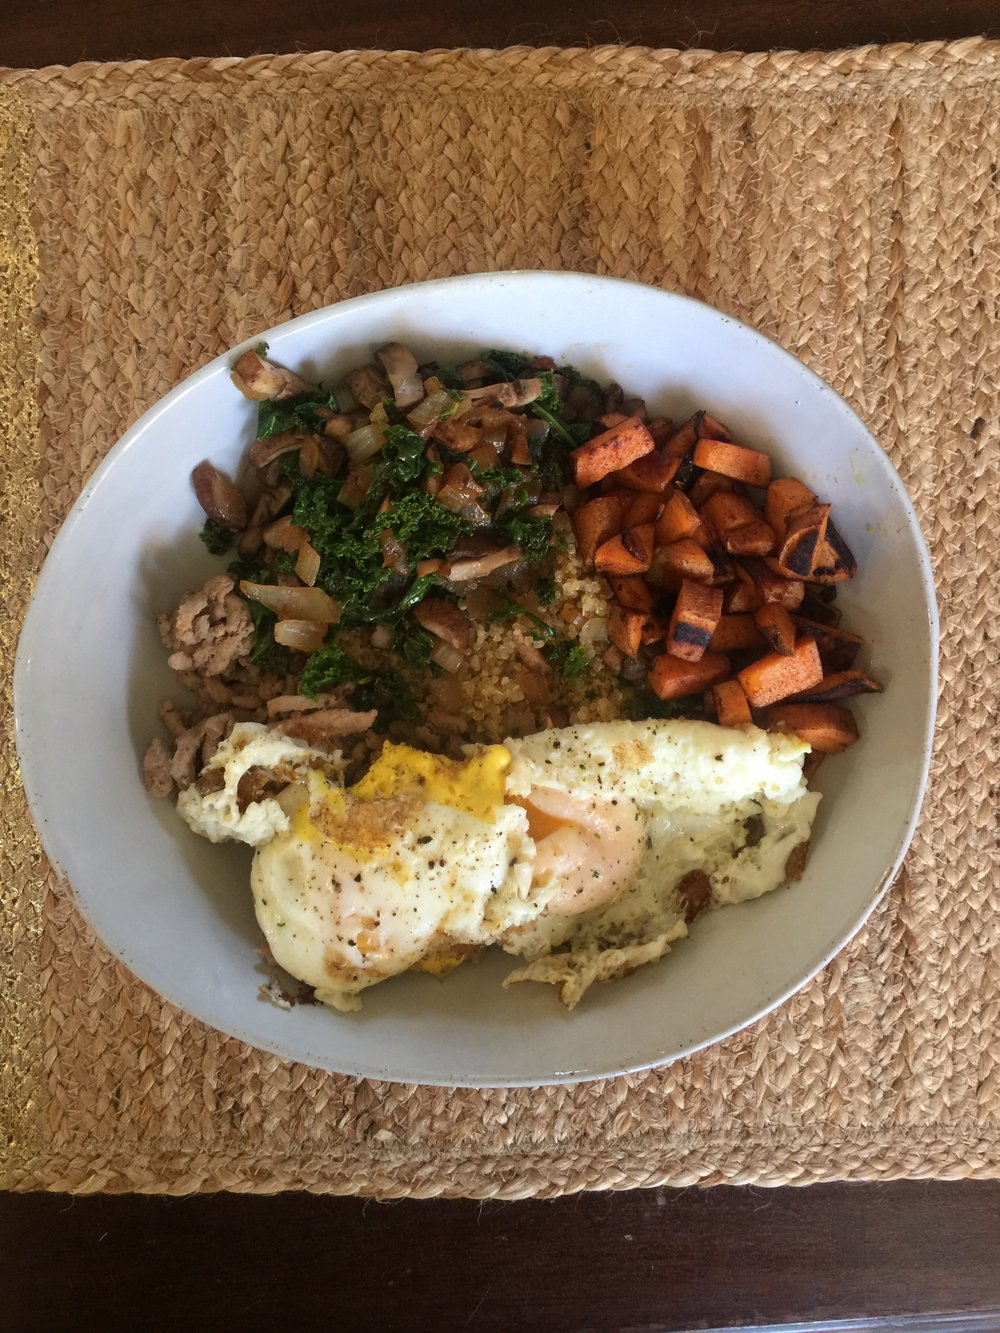 The power bowl. It had: ground turkey, quinoa, kale, mushrooms, onions, sweet potato, and eggs! So good!!